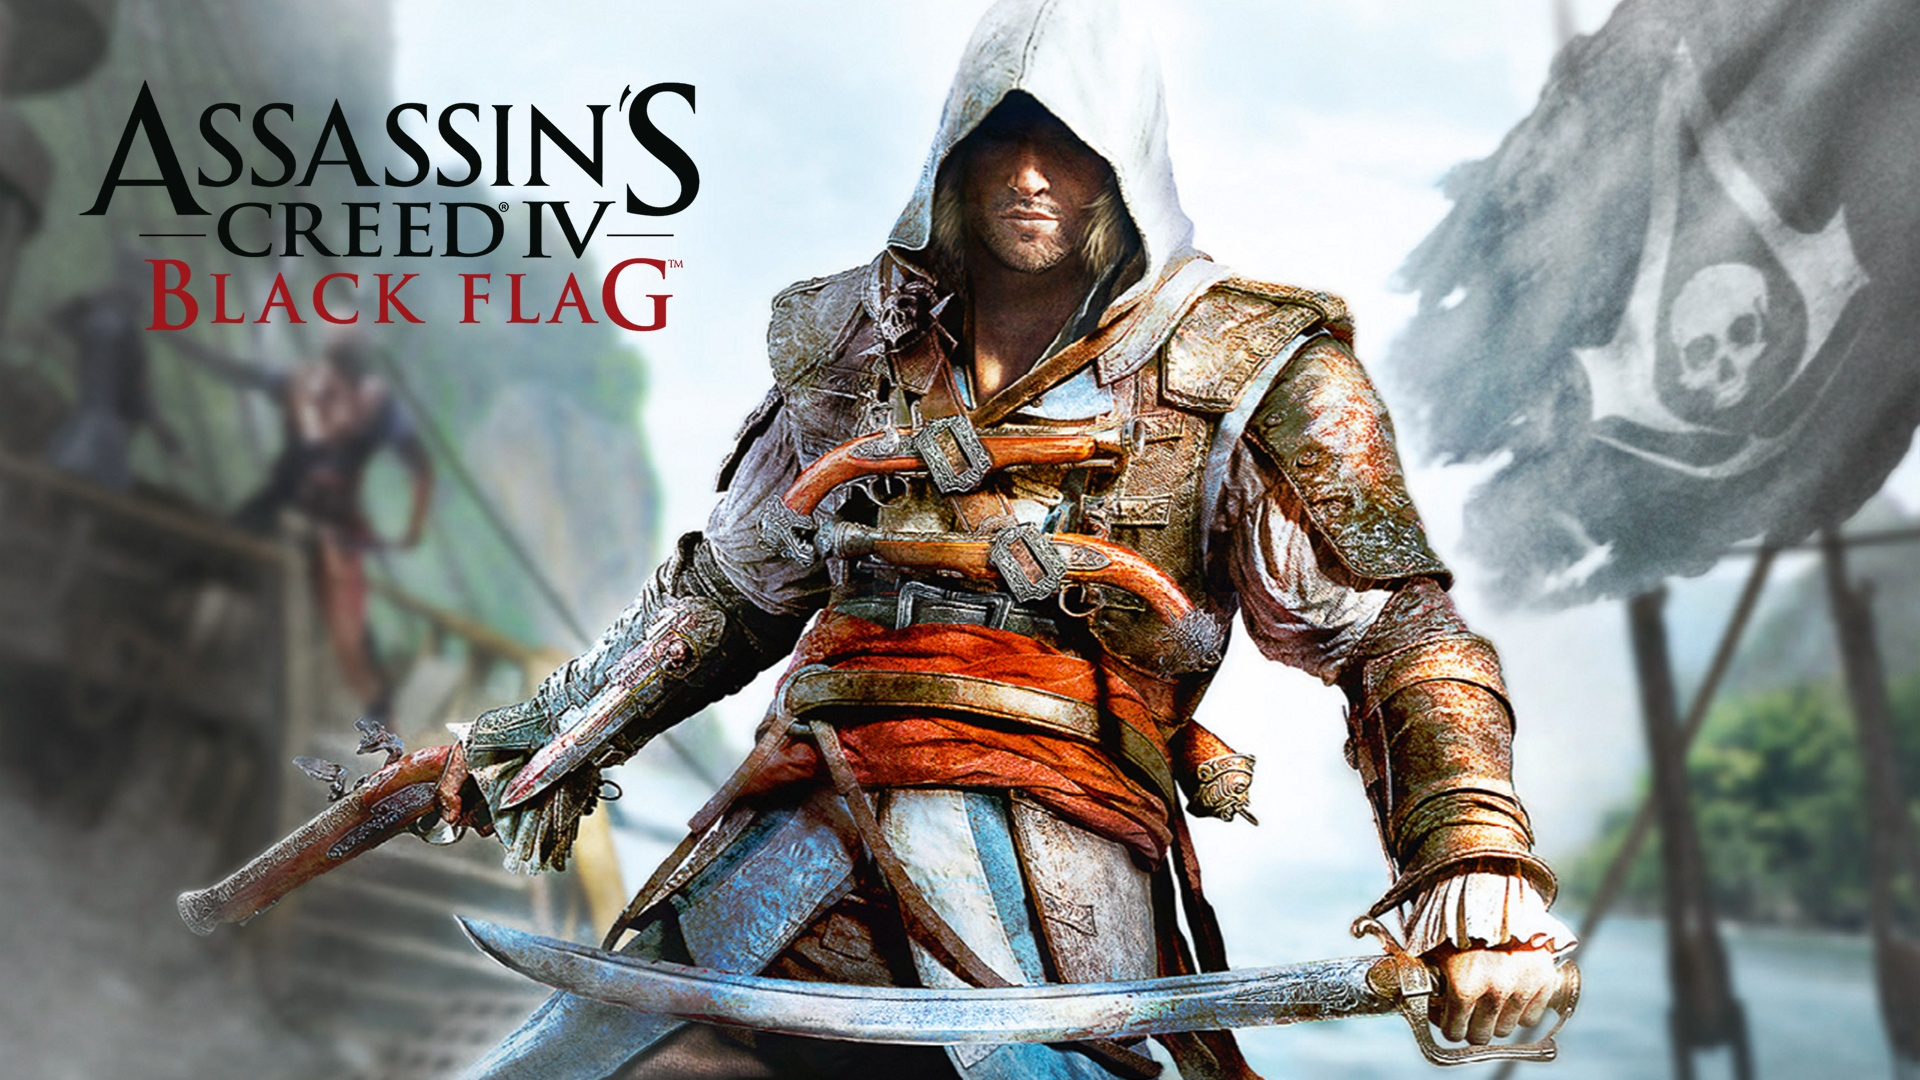 assassins creed black flag wallpapers in jpg format for